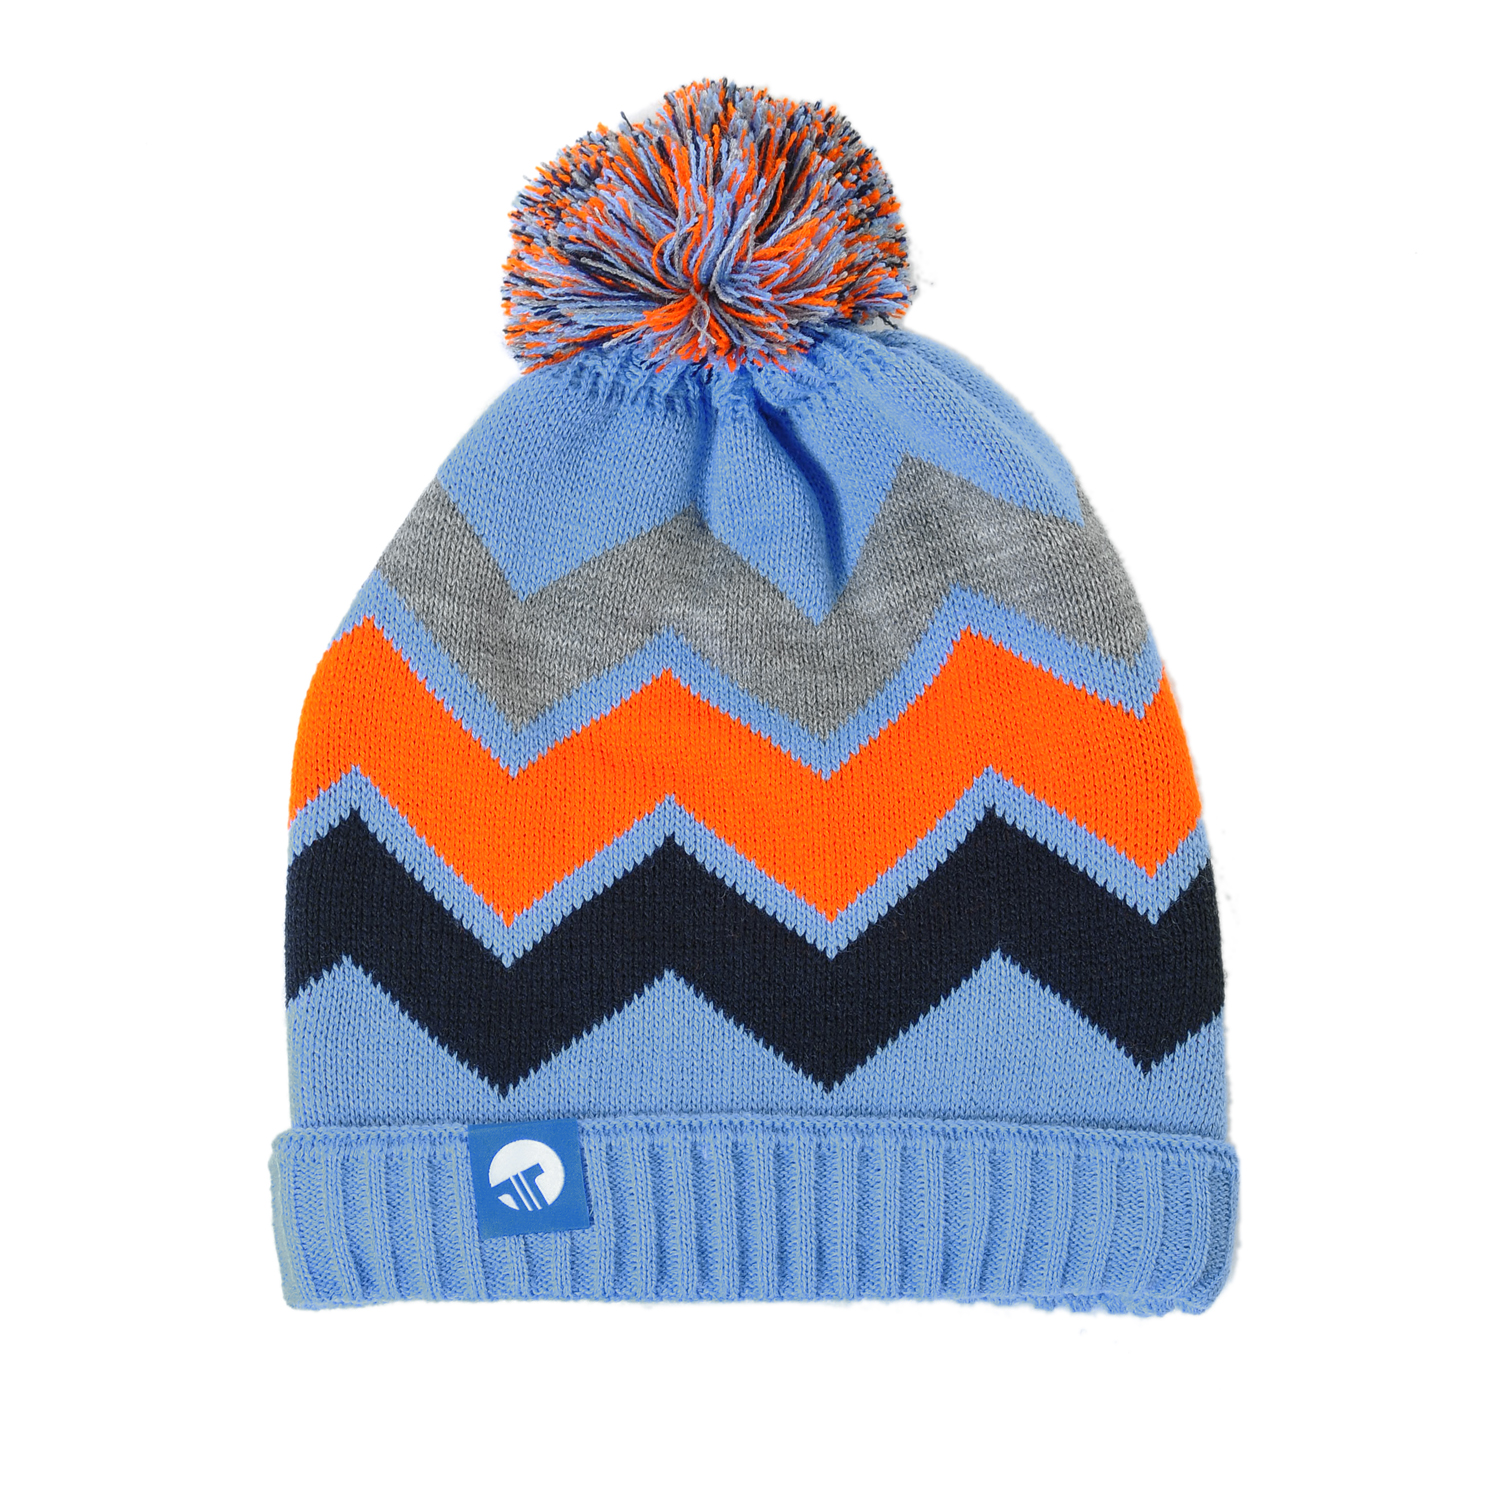 Tisza shoes - Hats - Blue-orange